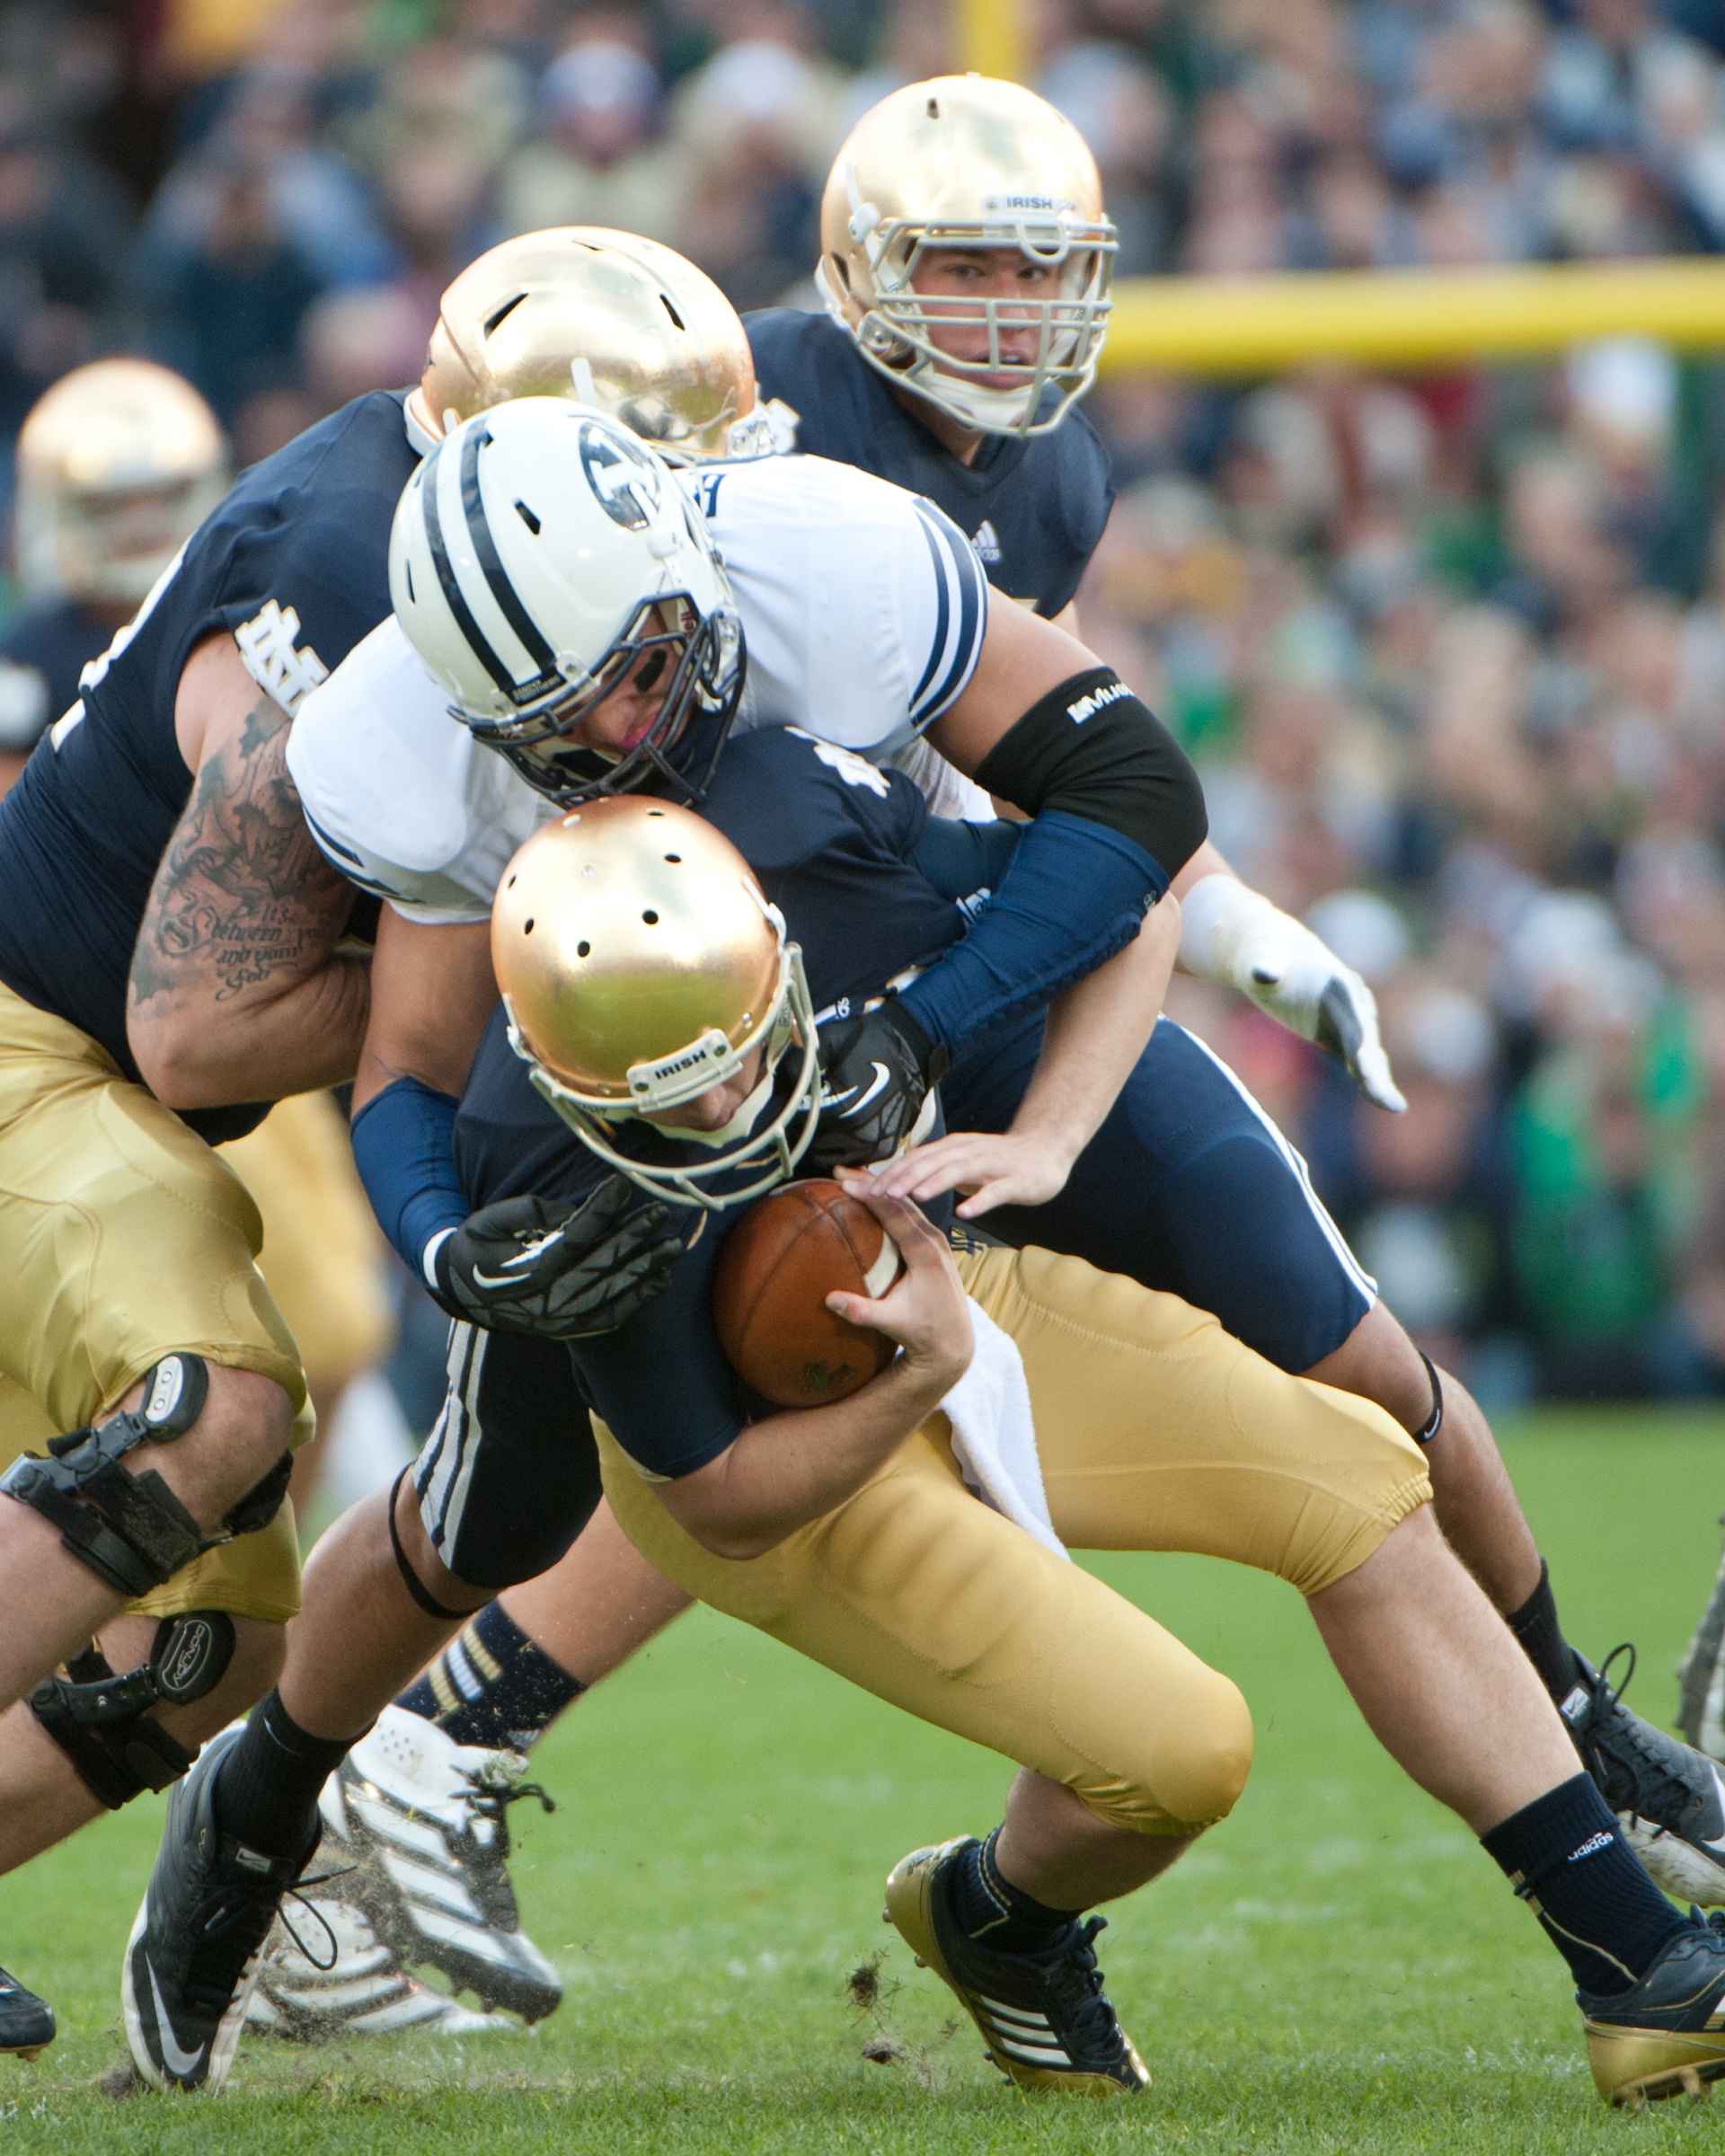 BYU defensive lineman Bronson Kaufusi sacks Notre Dame quarterback Tommy Rees. Photo by Chris Bunker